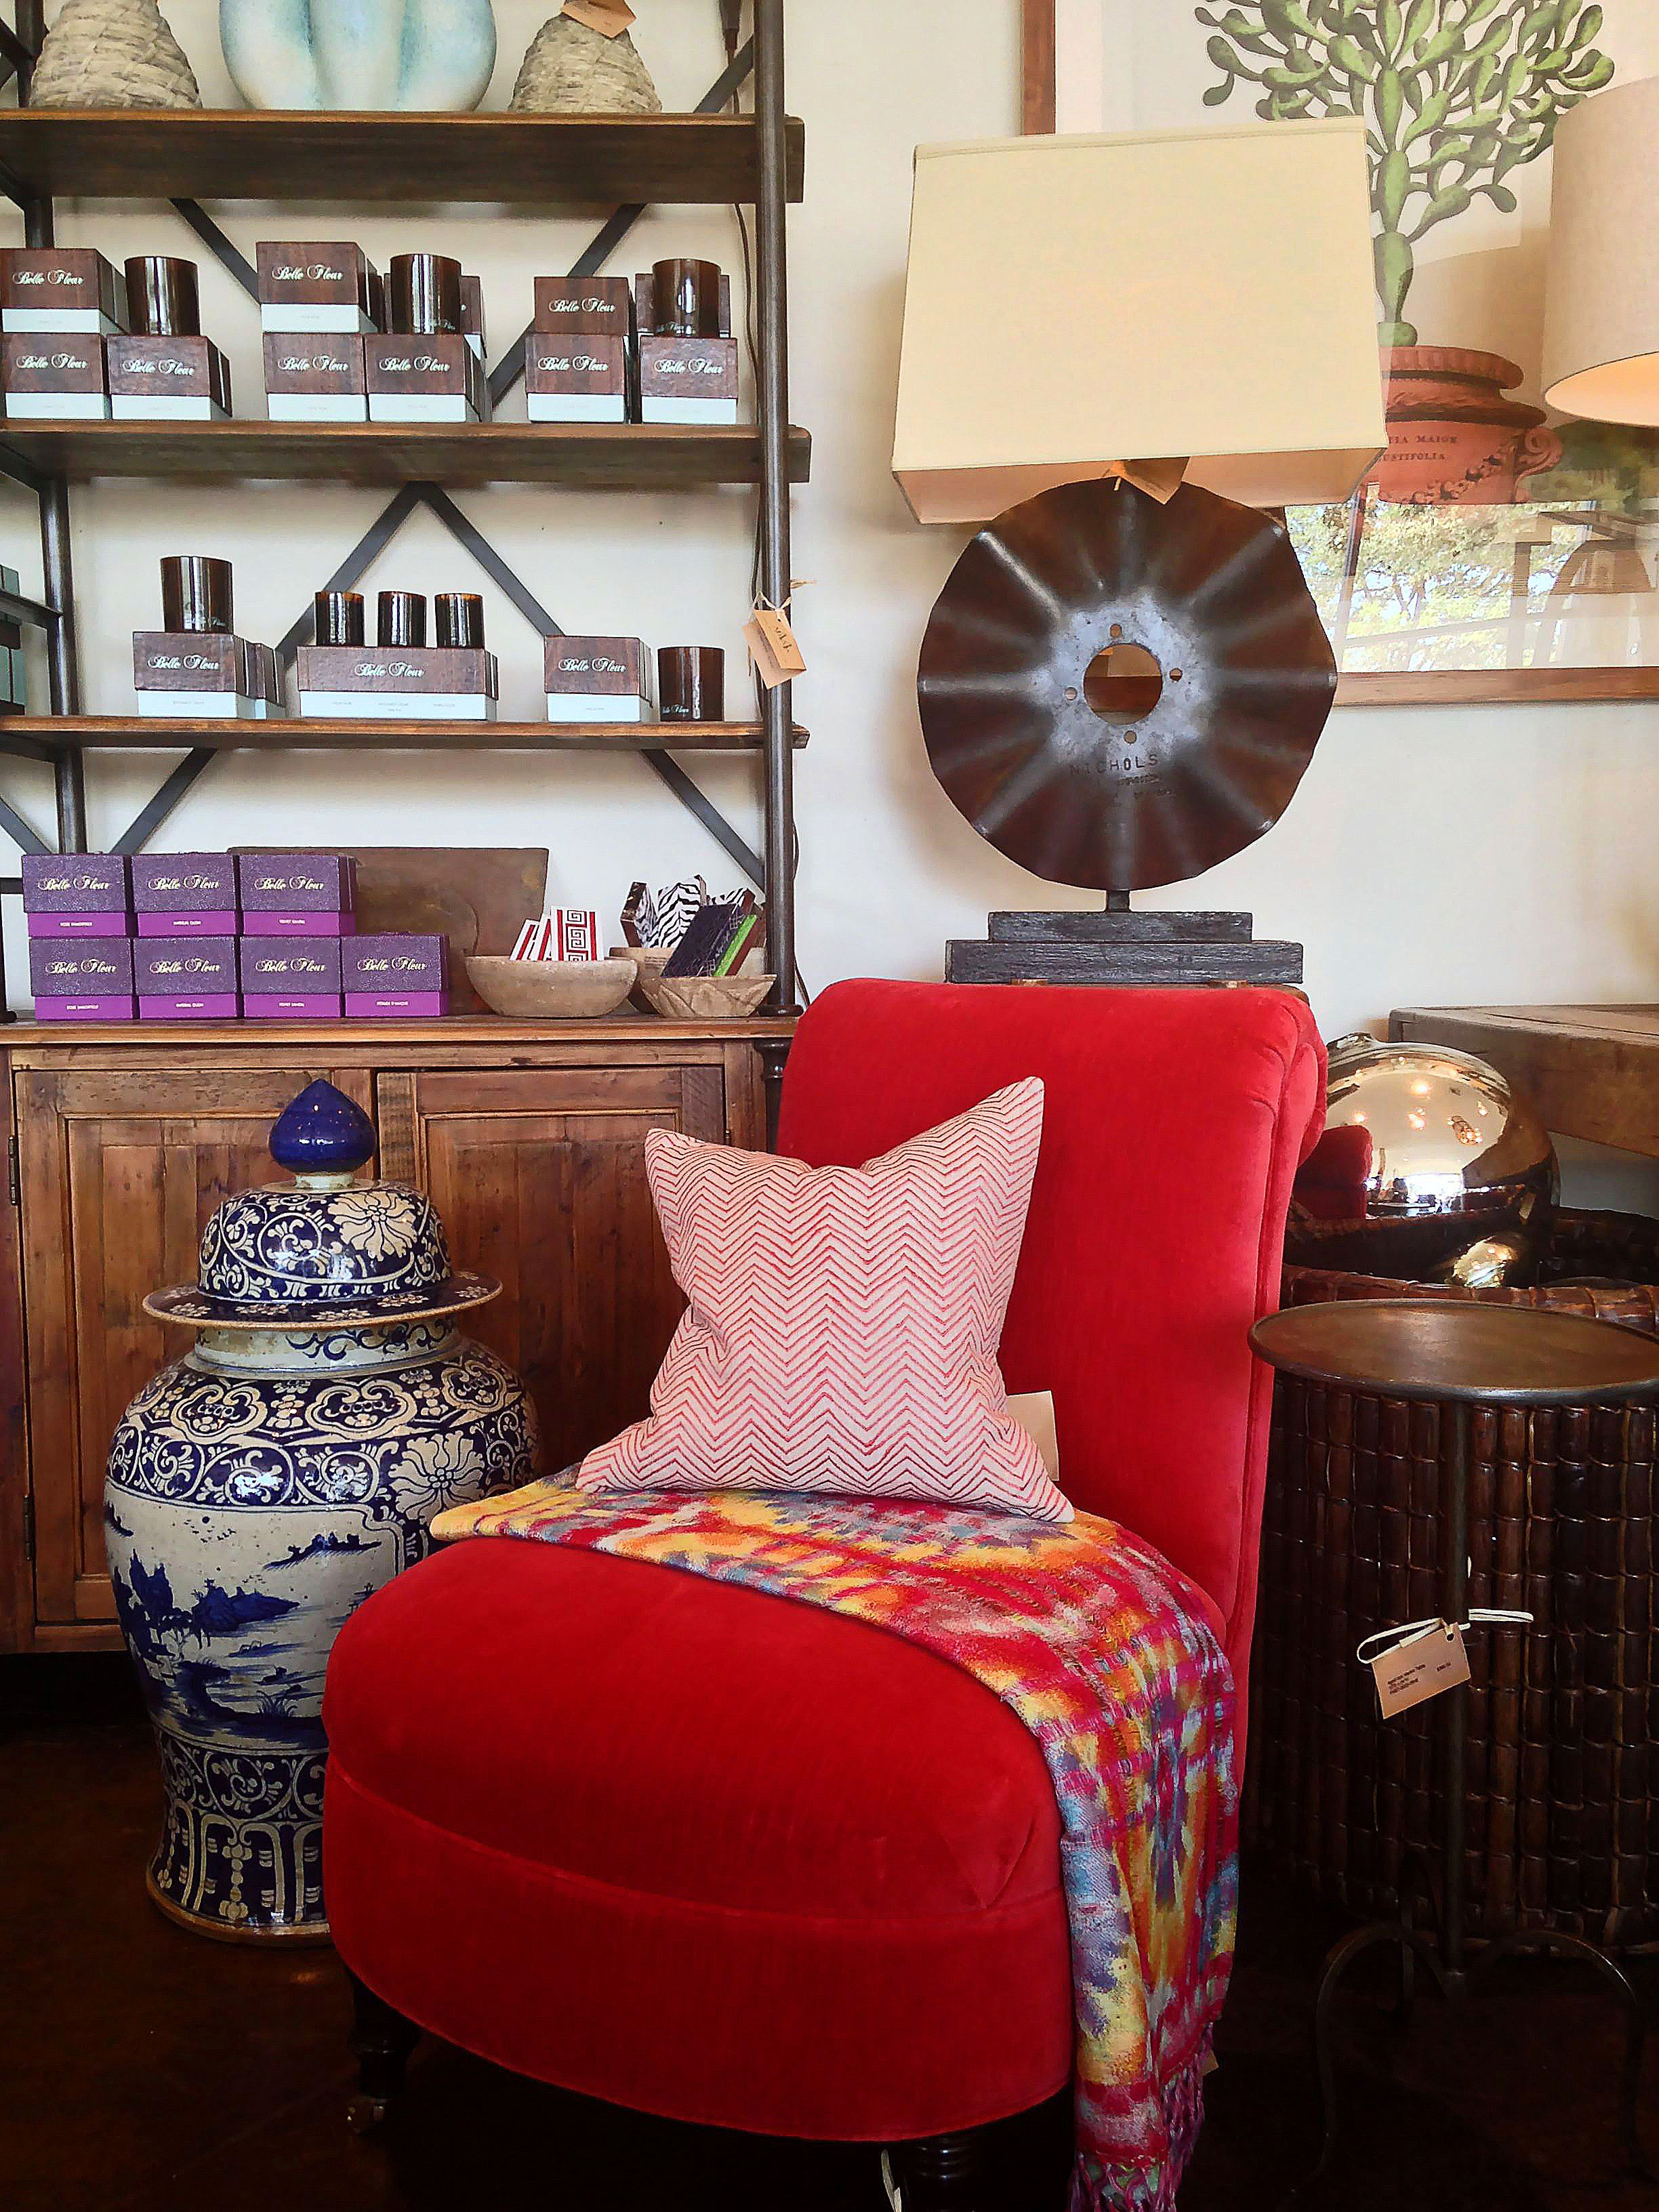 Red upholstered #chair with tie dye throw #blanket makes the ideal accent piece at #Dallas #Mecox #interiordesign #mecoxgardens #furniture #shopping #home #decor #design #room #designidea #vintage #antiques #garden